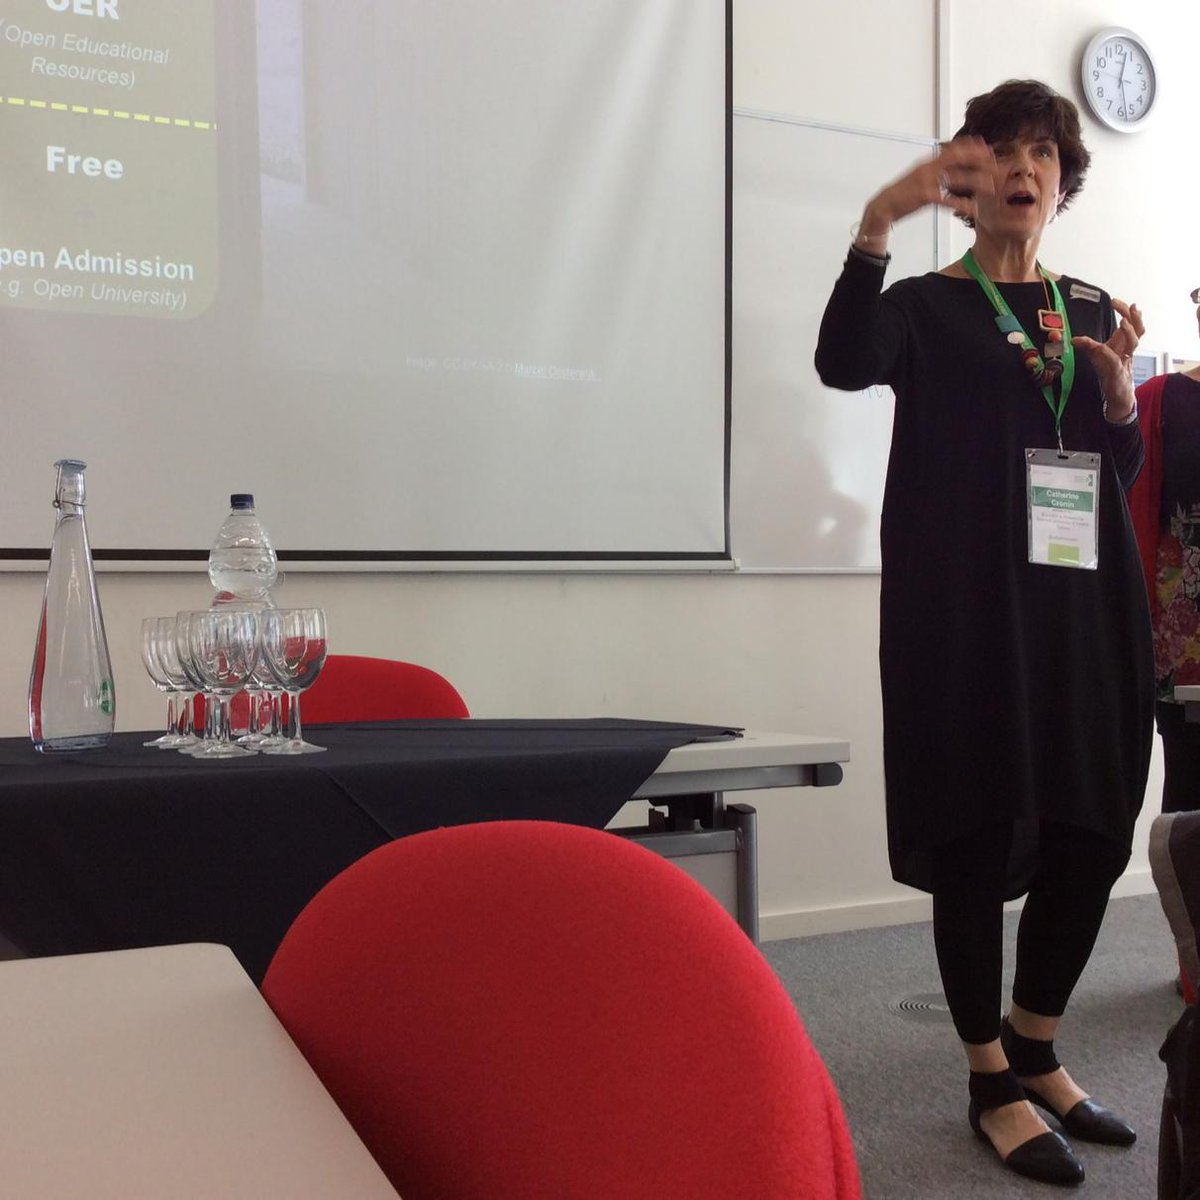 @catherinecronin in full flow #altc going #open http://t.co/sMYCuAtoRv